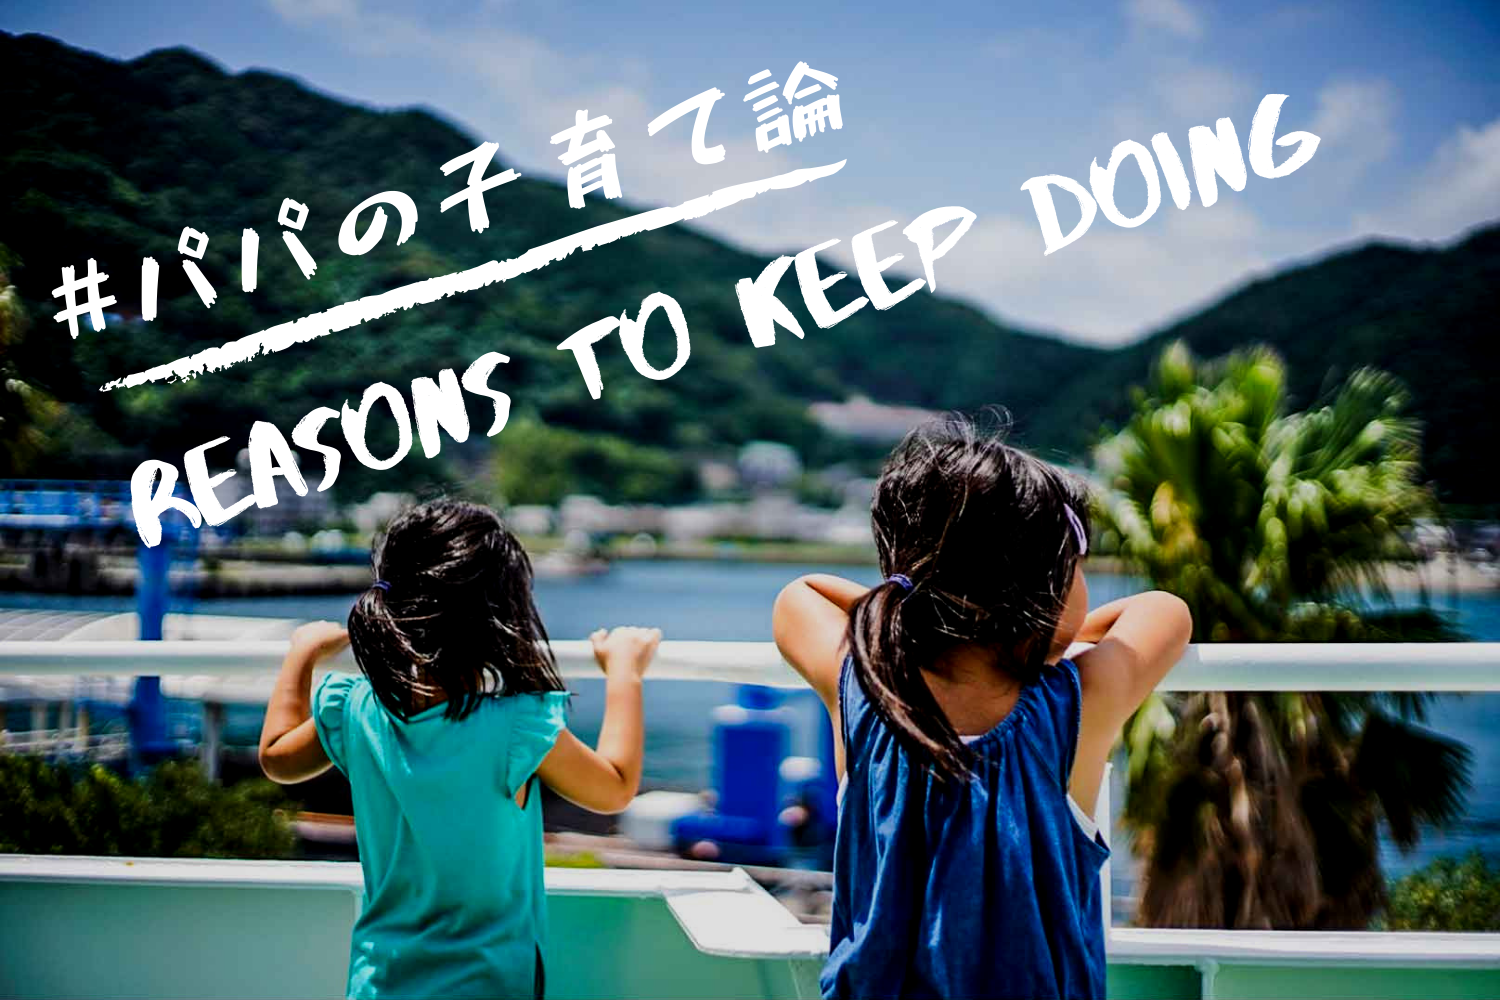 Reasons to keep doing